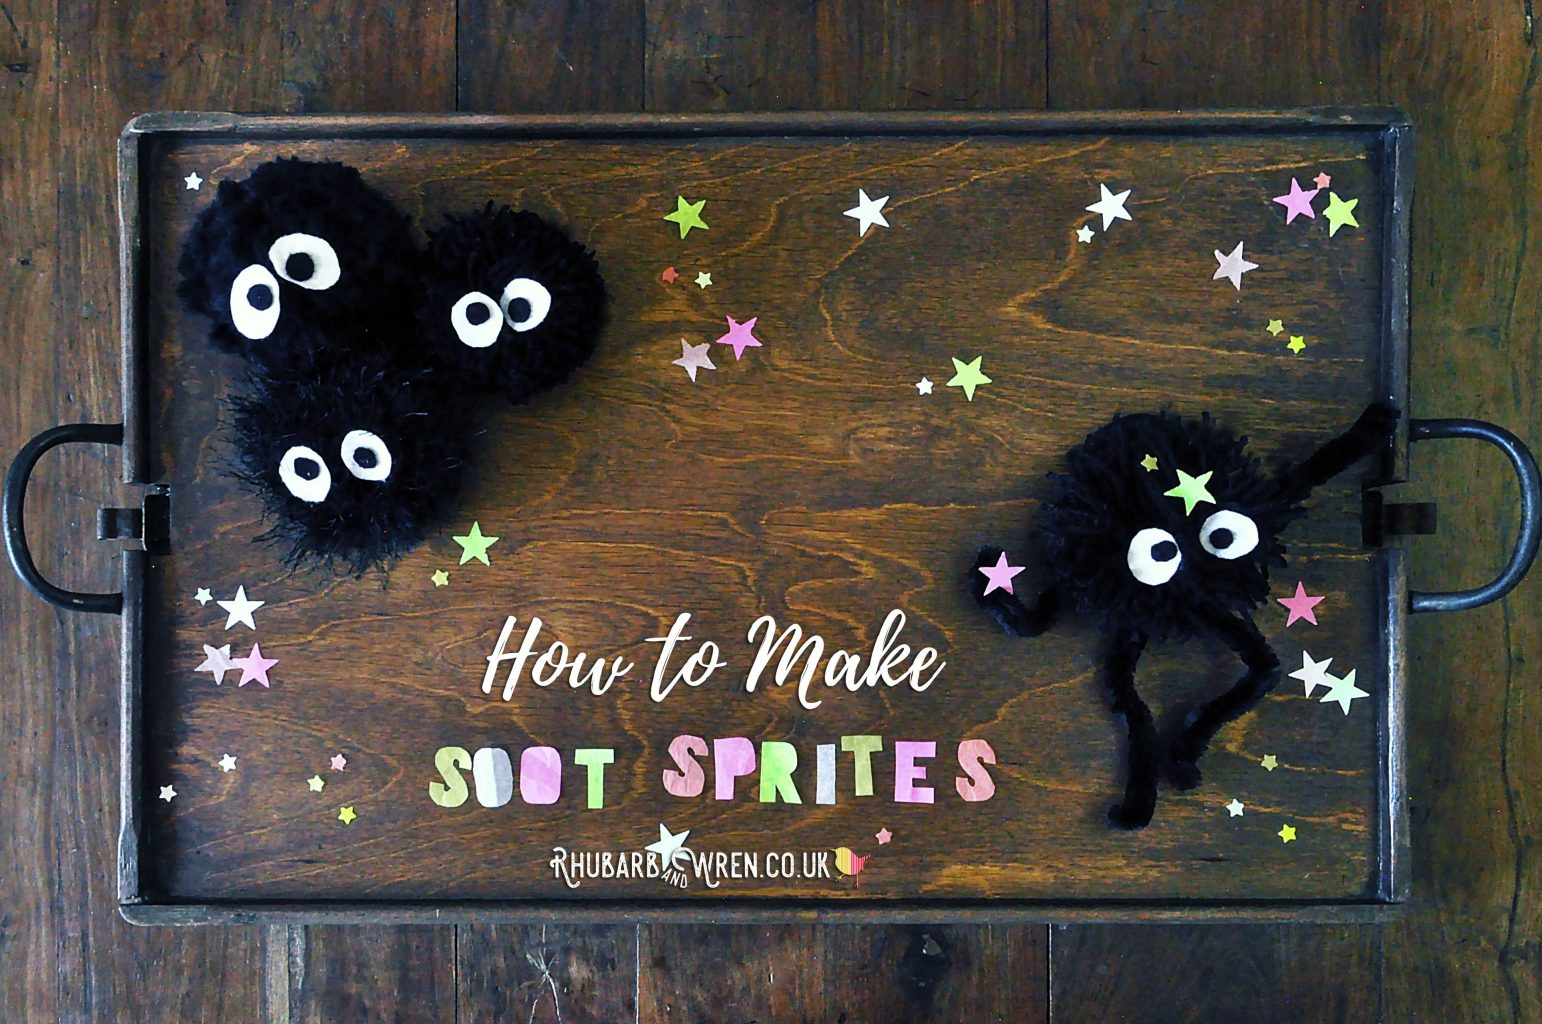 home-made pompom soot sprites